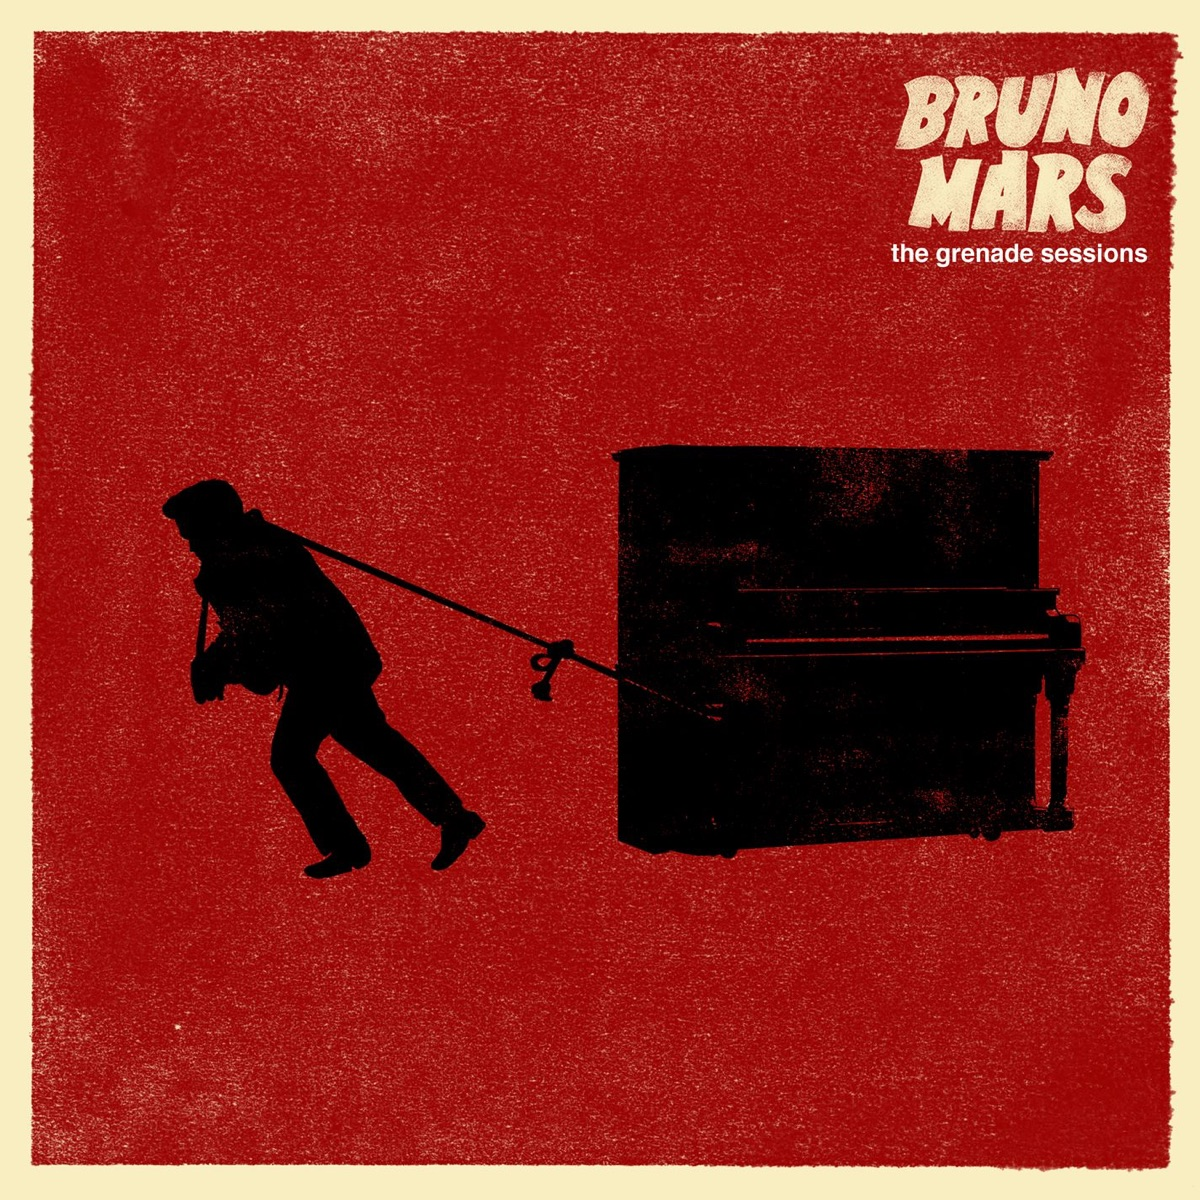 The Grenade Sessions - EP Bruno Mars CD cover